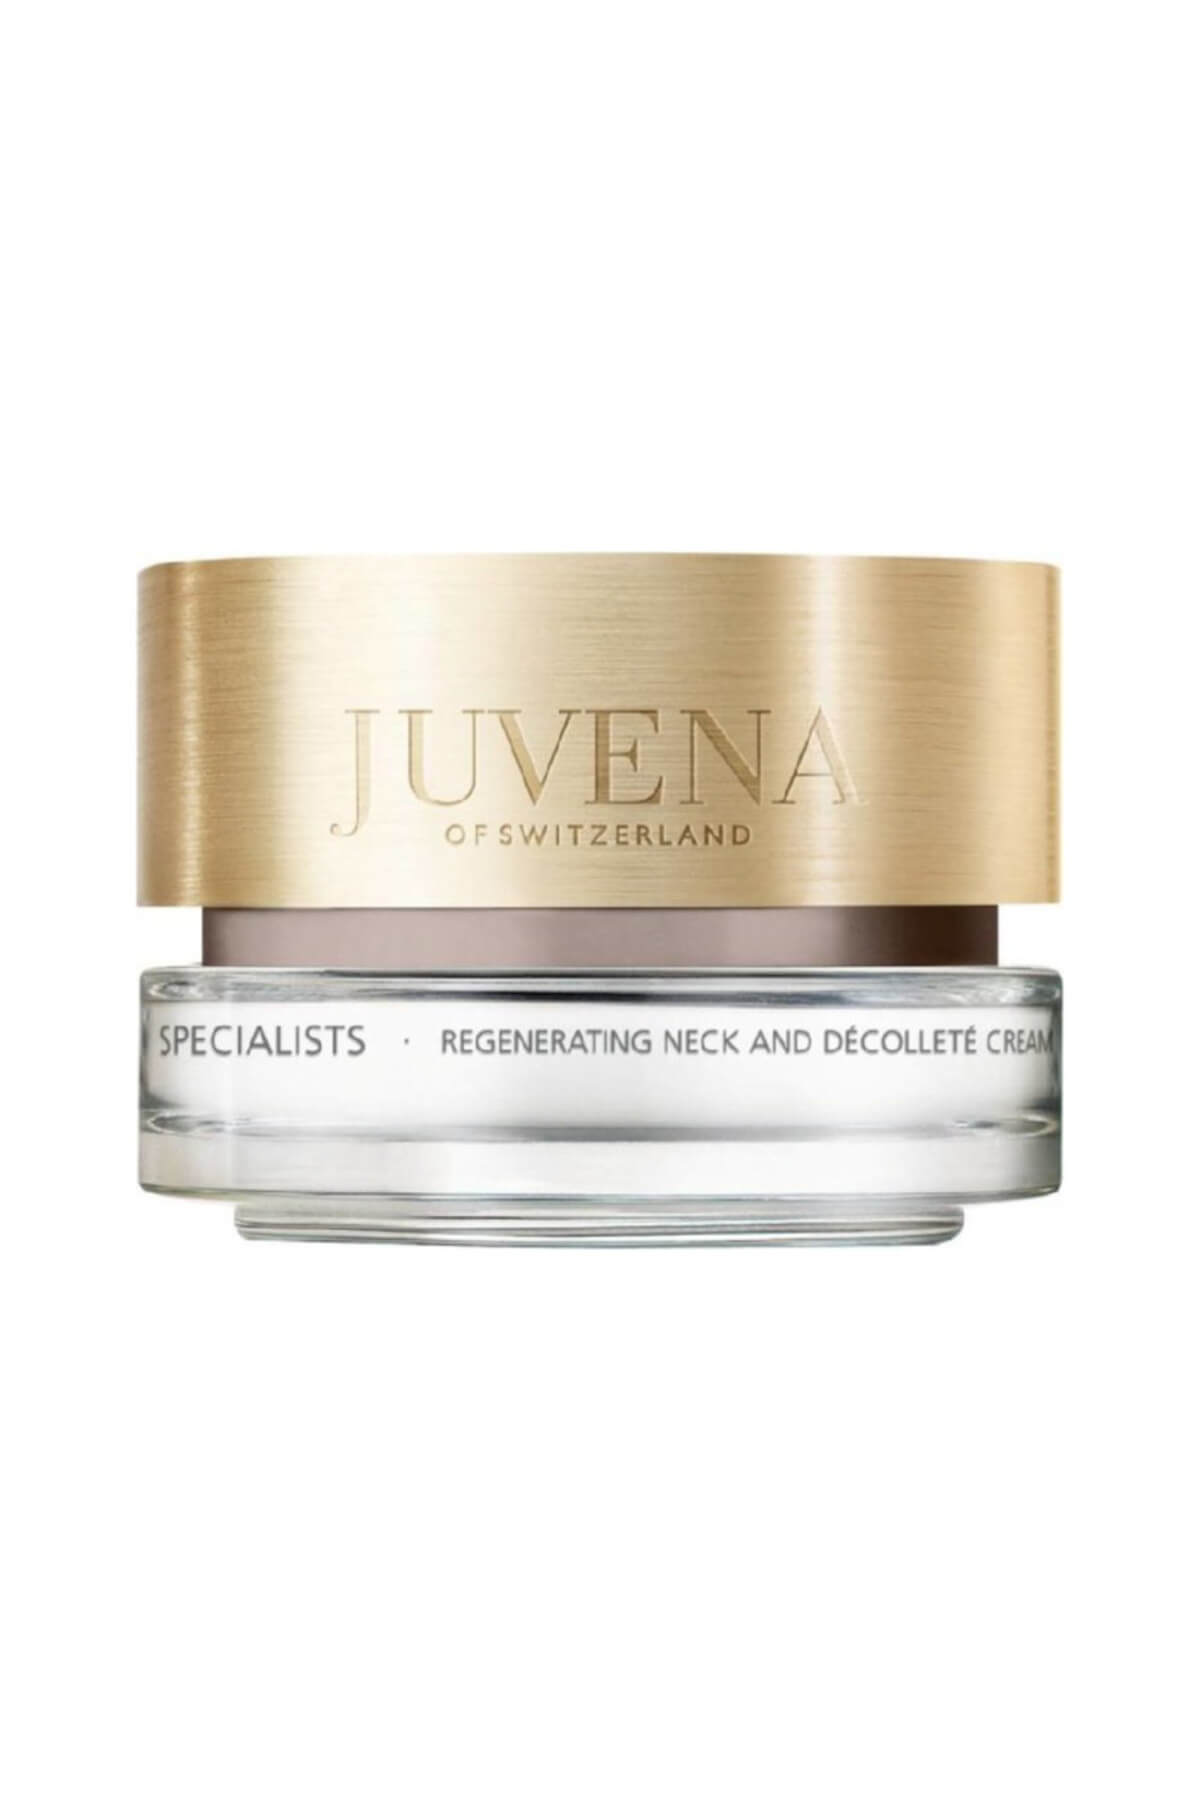 Juvena Specialists Regenerating Neck and Decollete Cream 50ml